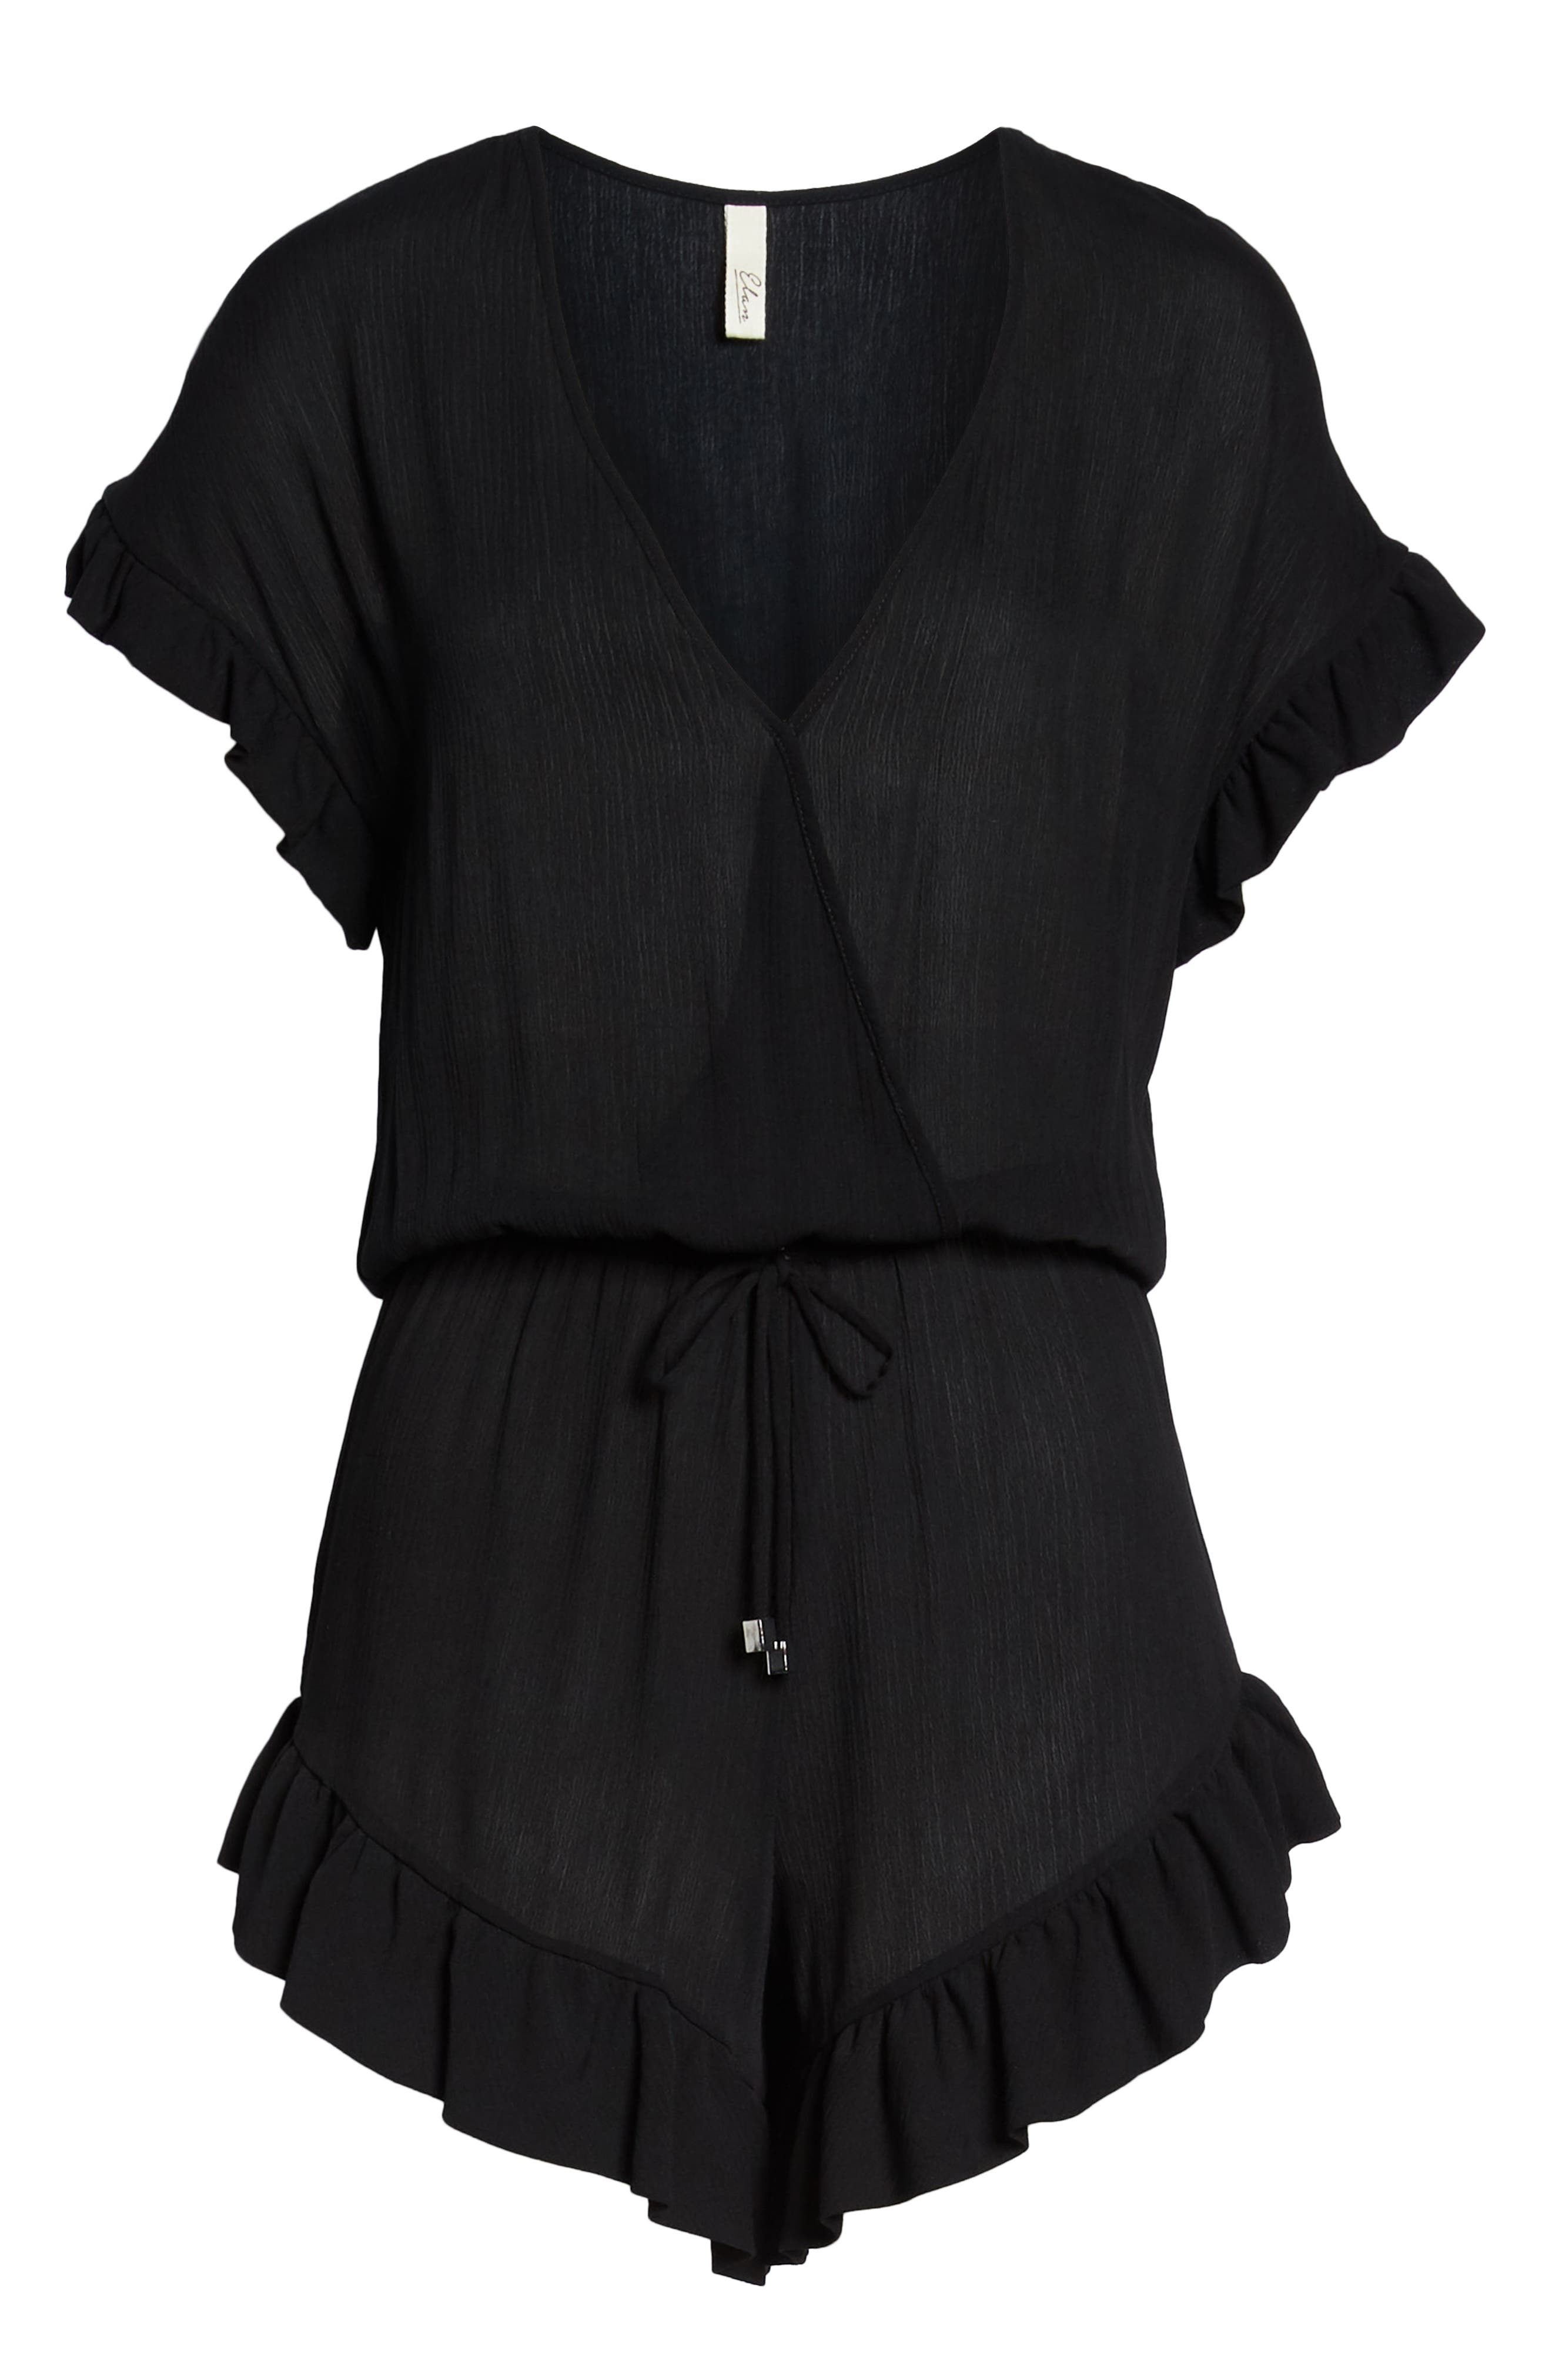 ELAN, Ruffle Sleeve Cover-Up Romper, Alternate thumbnail 7, color, BLACK